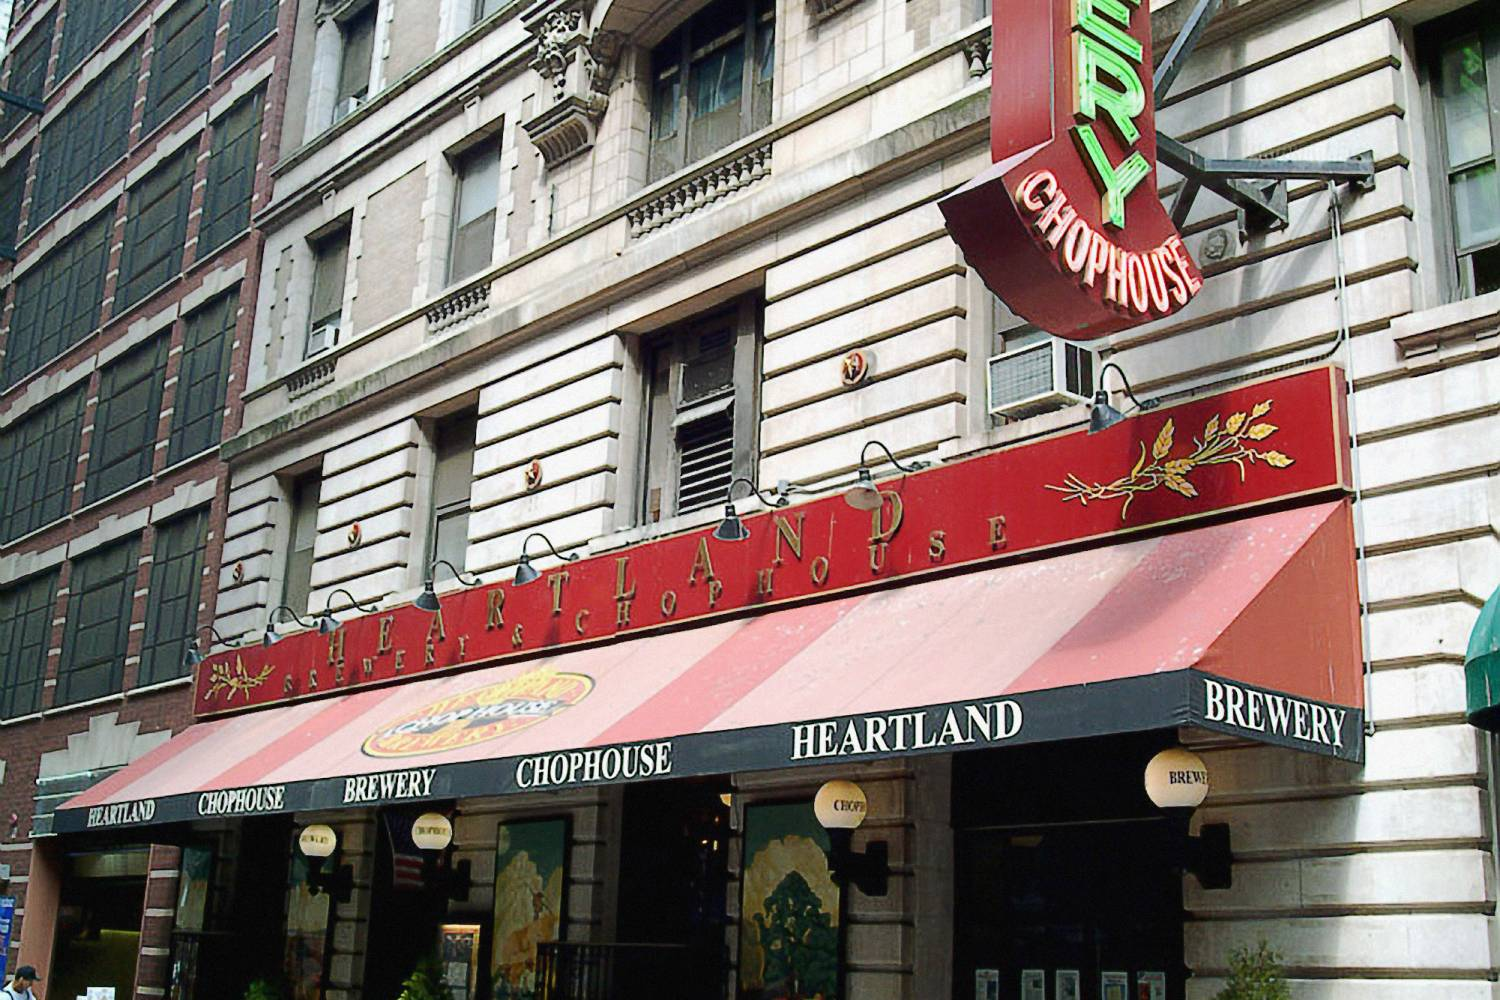 Heartland Brewery & Chop House (Times Square), exterior